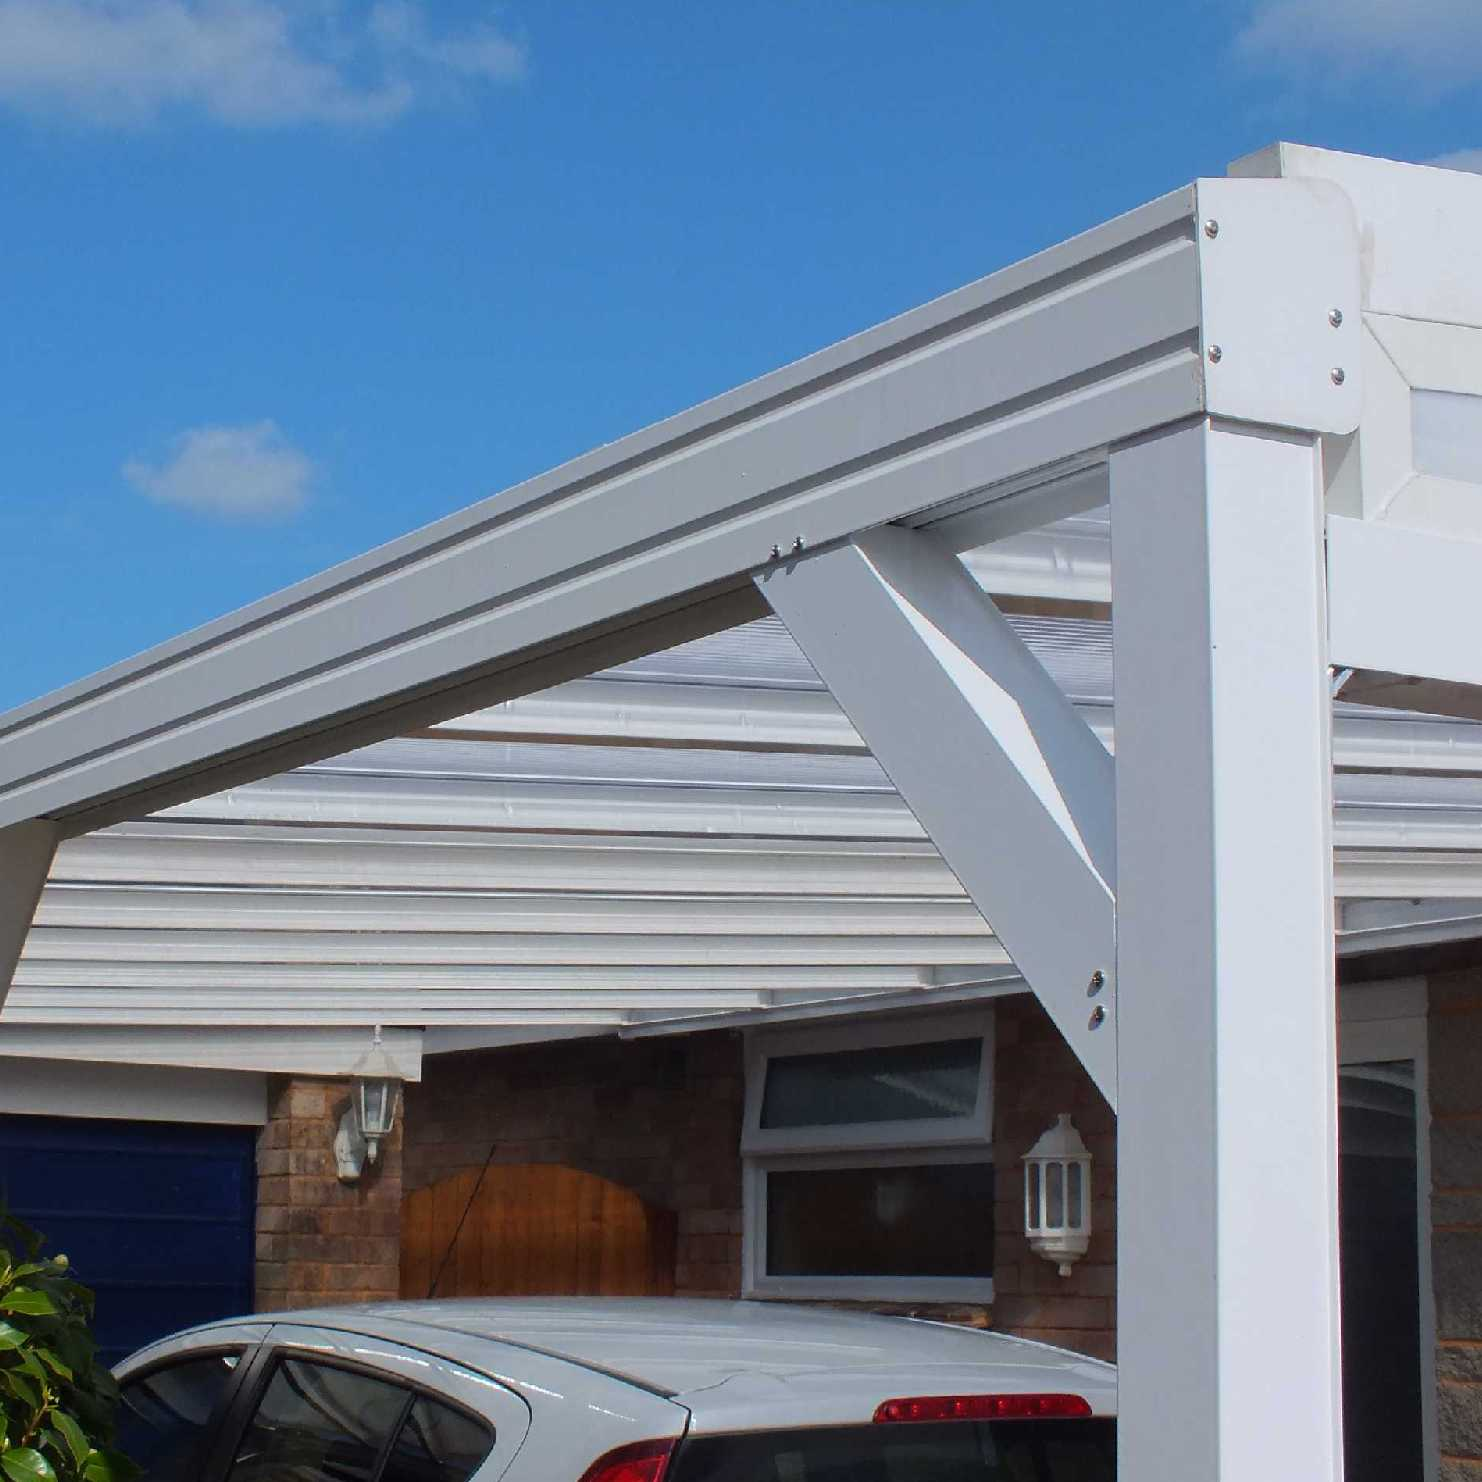 Buy Omega Smart White Lean-To Canopy with 16mm Polycarbonate Glazing - 2.1m (W) x 2.5m (P), (2) Supporting Posts online today